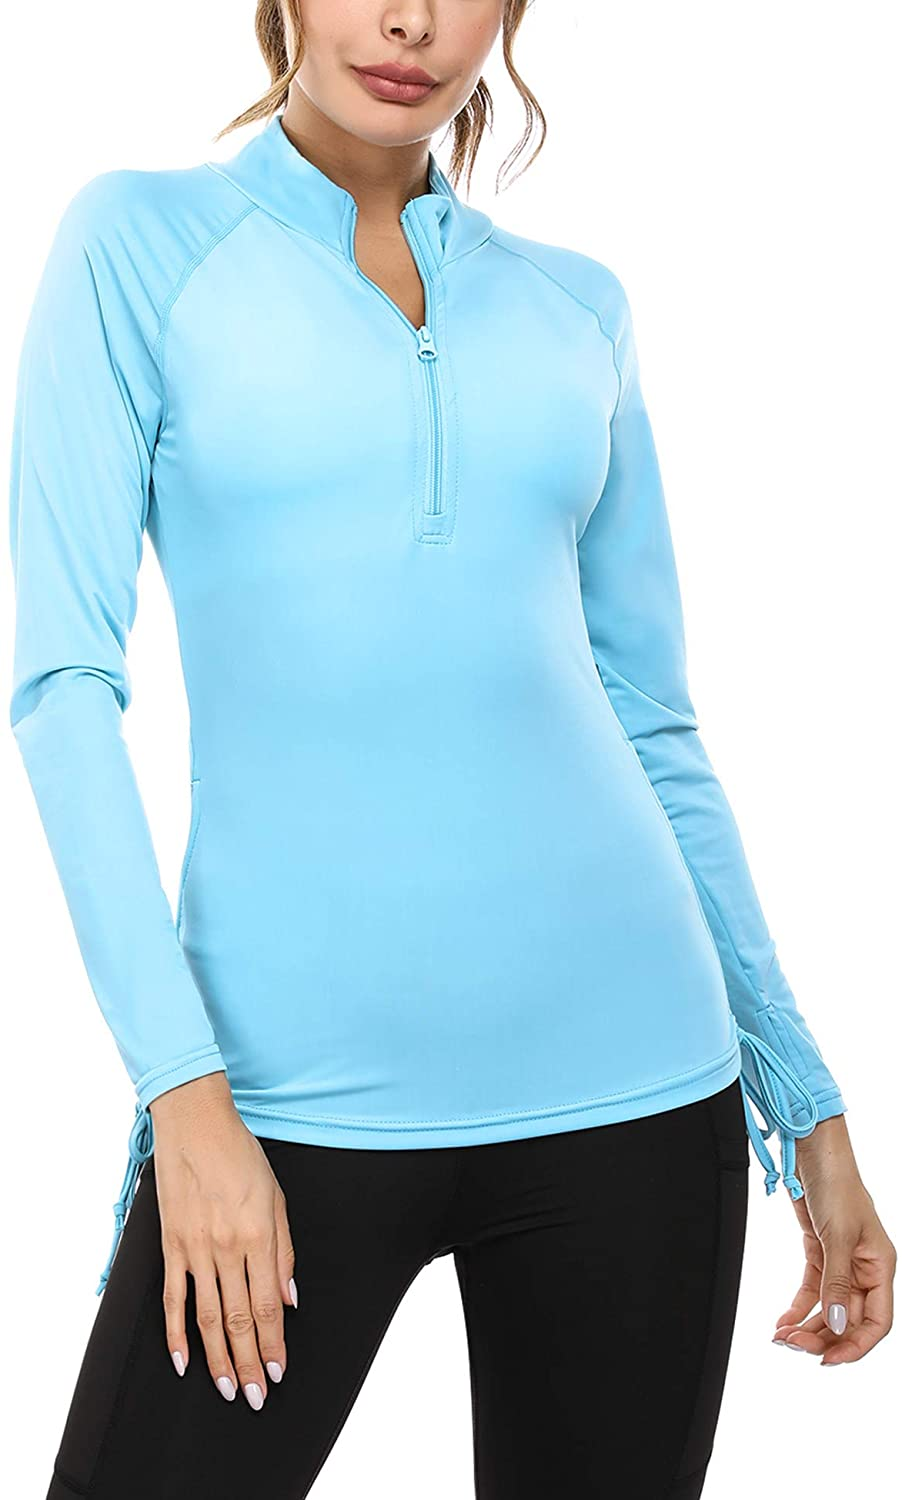 Sykooria Womens Half Zip Pullover Sweatshirts Long Sleeve Running Pullover Jacket Workout Athletic Shirts with Thumb Holes